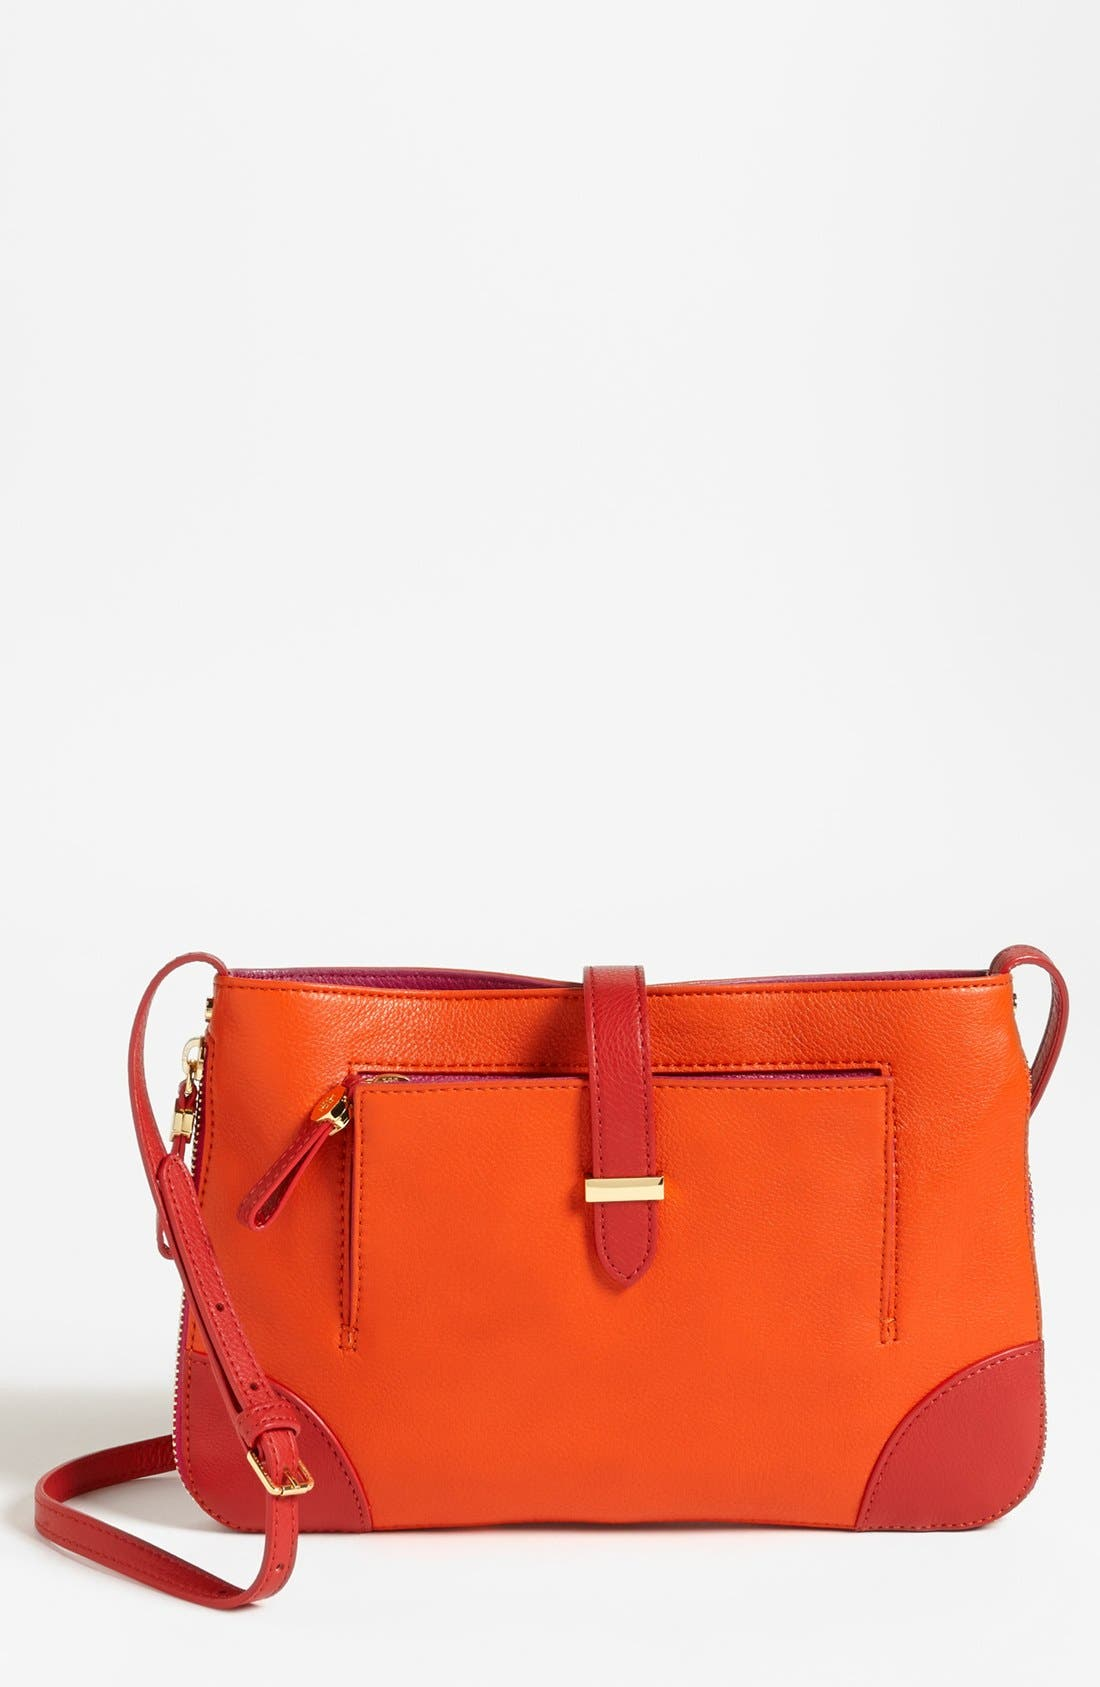 Main Image - Tory Burch 'Clay' Leather Crossbody Bag